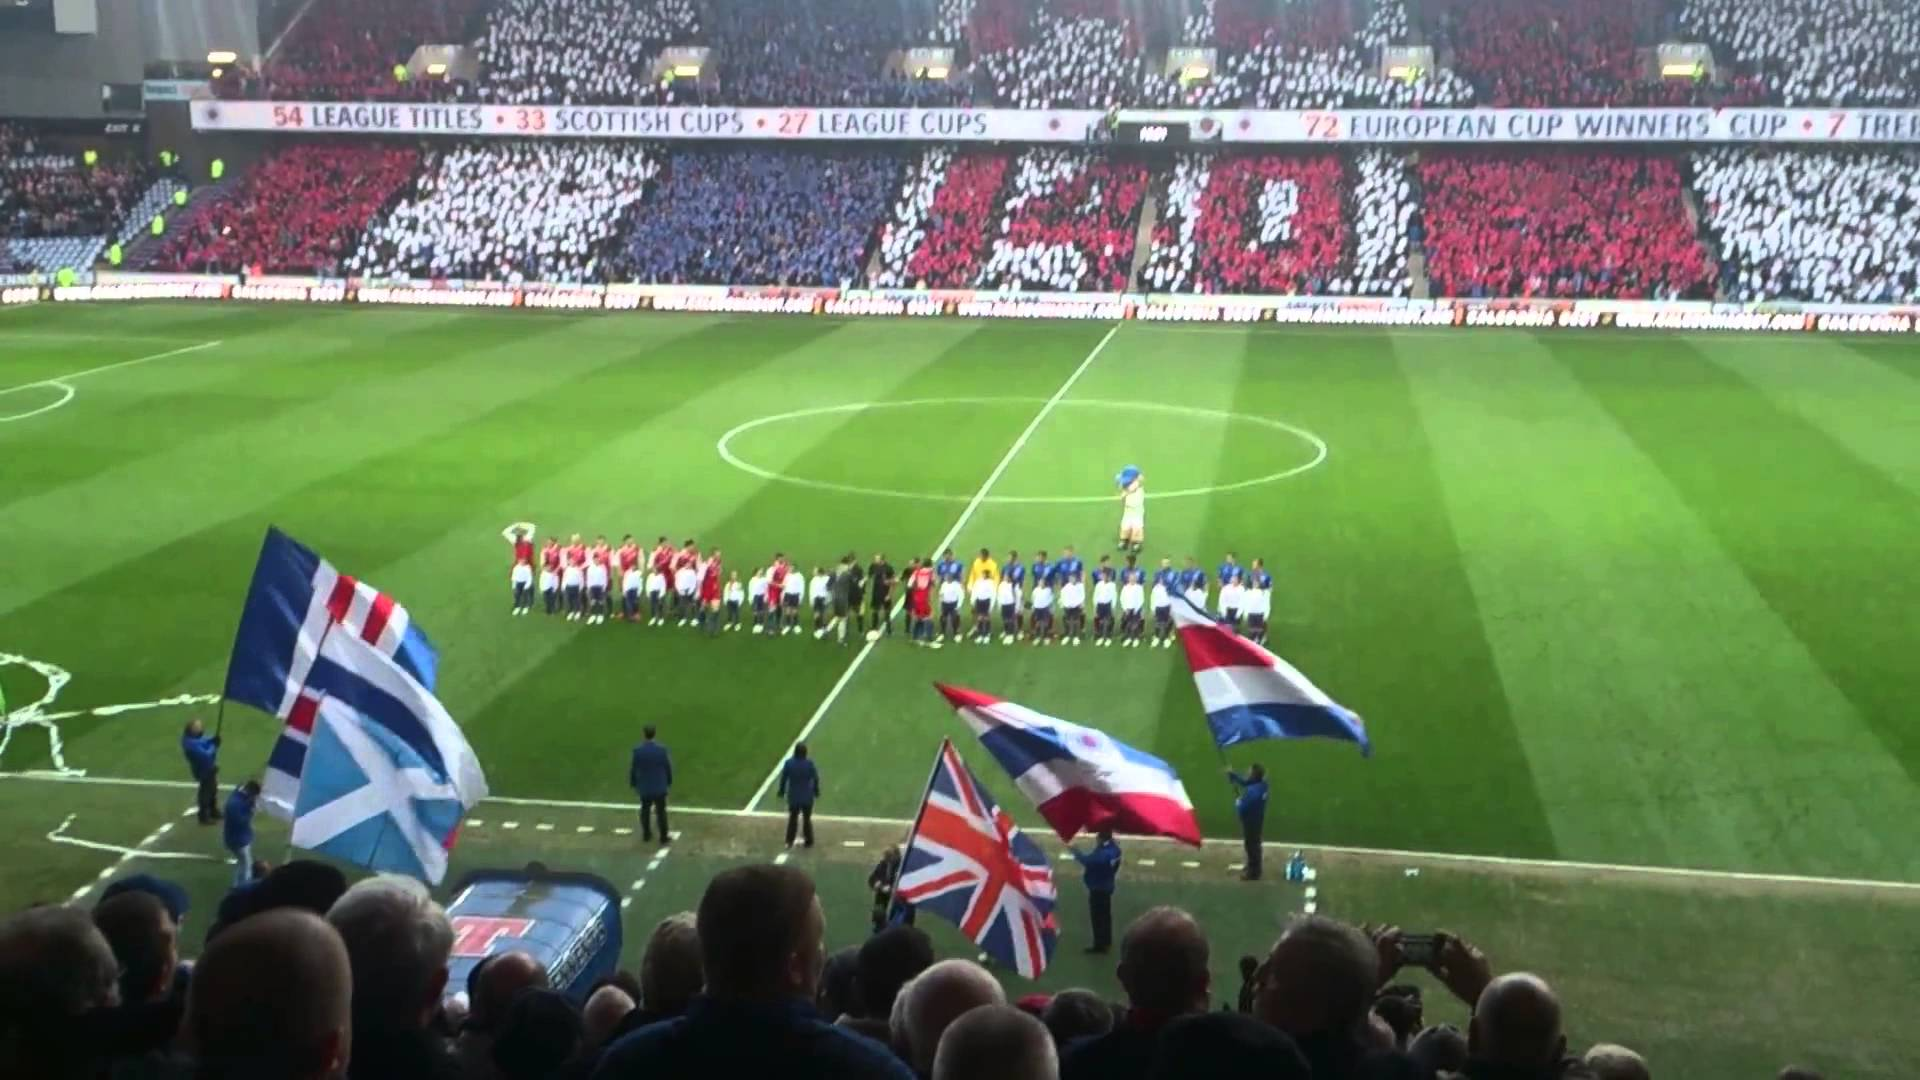 Rangers FC 140 Years Pre Match Atmosphere HD